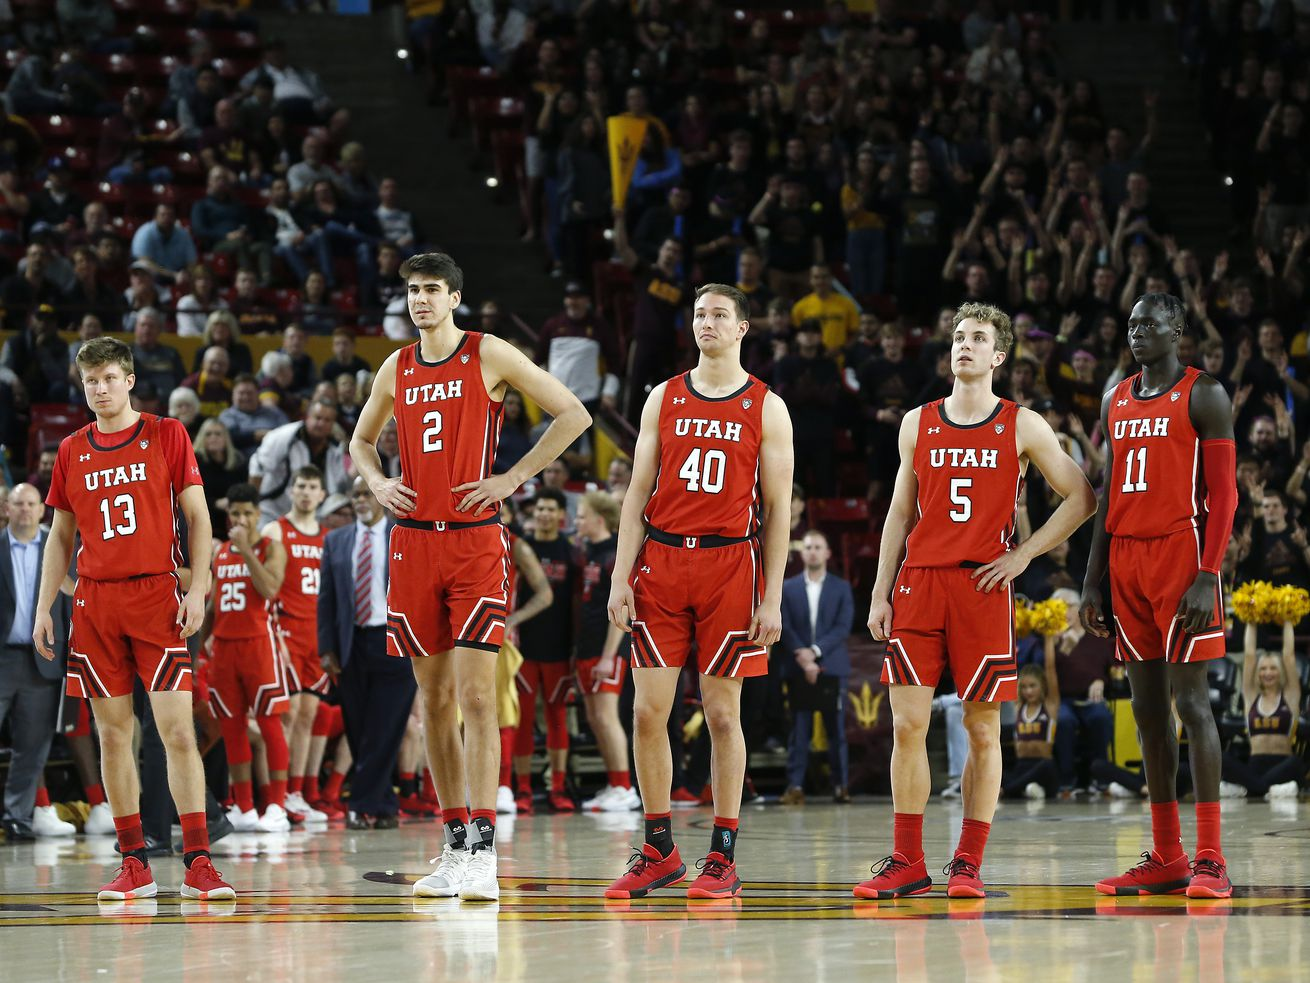 Ute Insiders: What to make of Utes' 4-game losing streak (podcast)